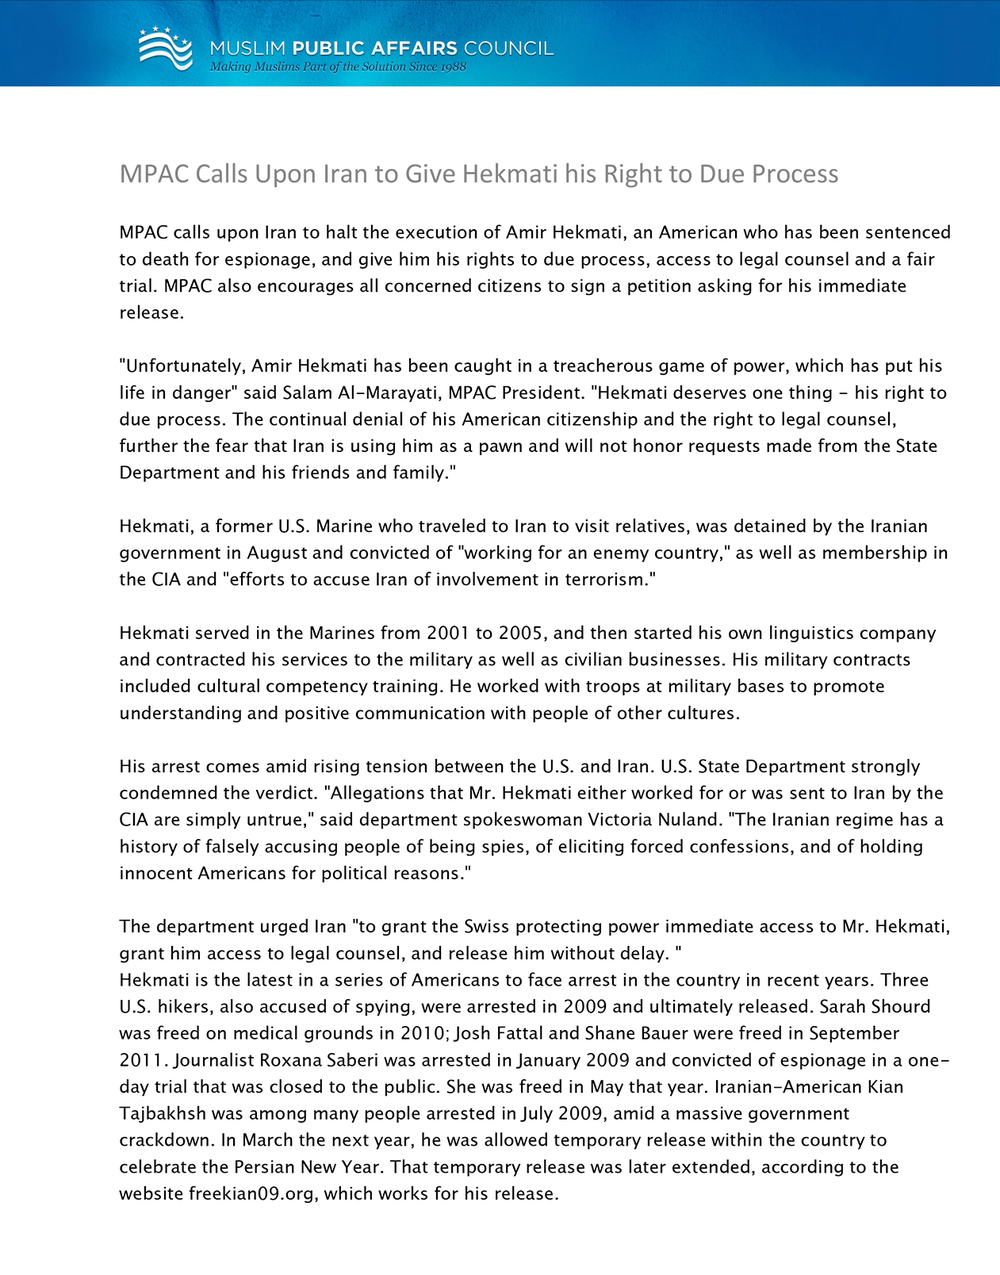 MPAC Calls Upon Iran to Give Hekmati his Right to Due Process.jpg